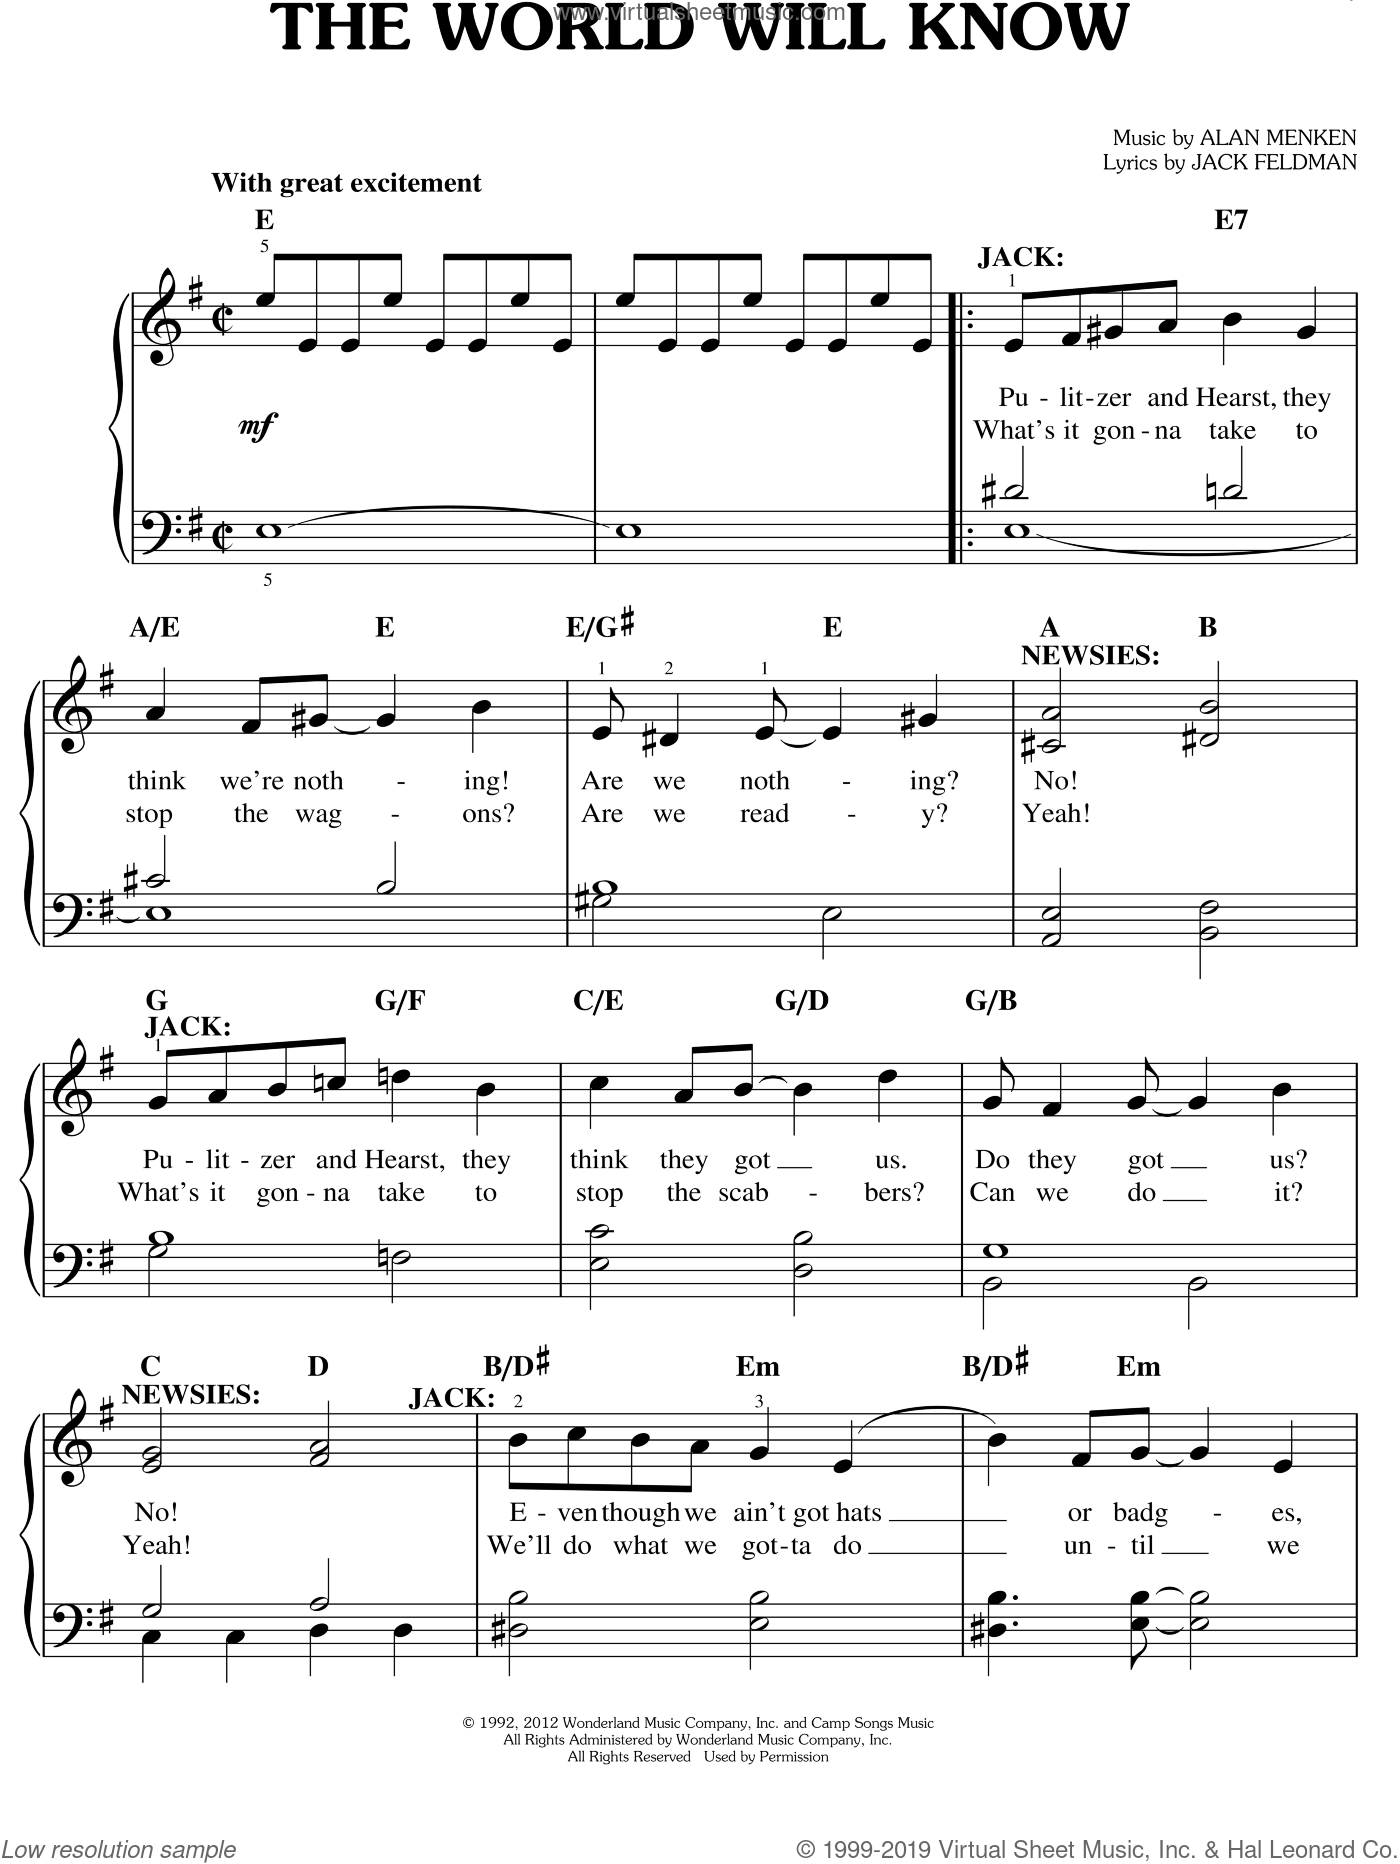 The World Will Know sheet music for piano solo by Jack Feldman, Alan Menken and Newsies (Musical), easy skill level